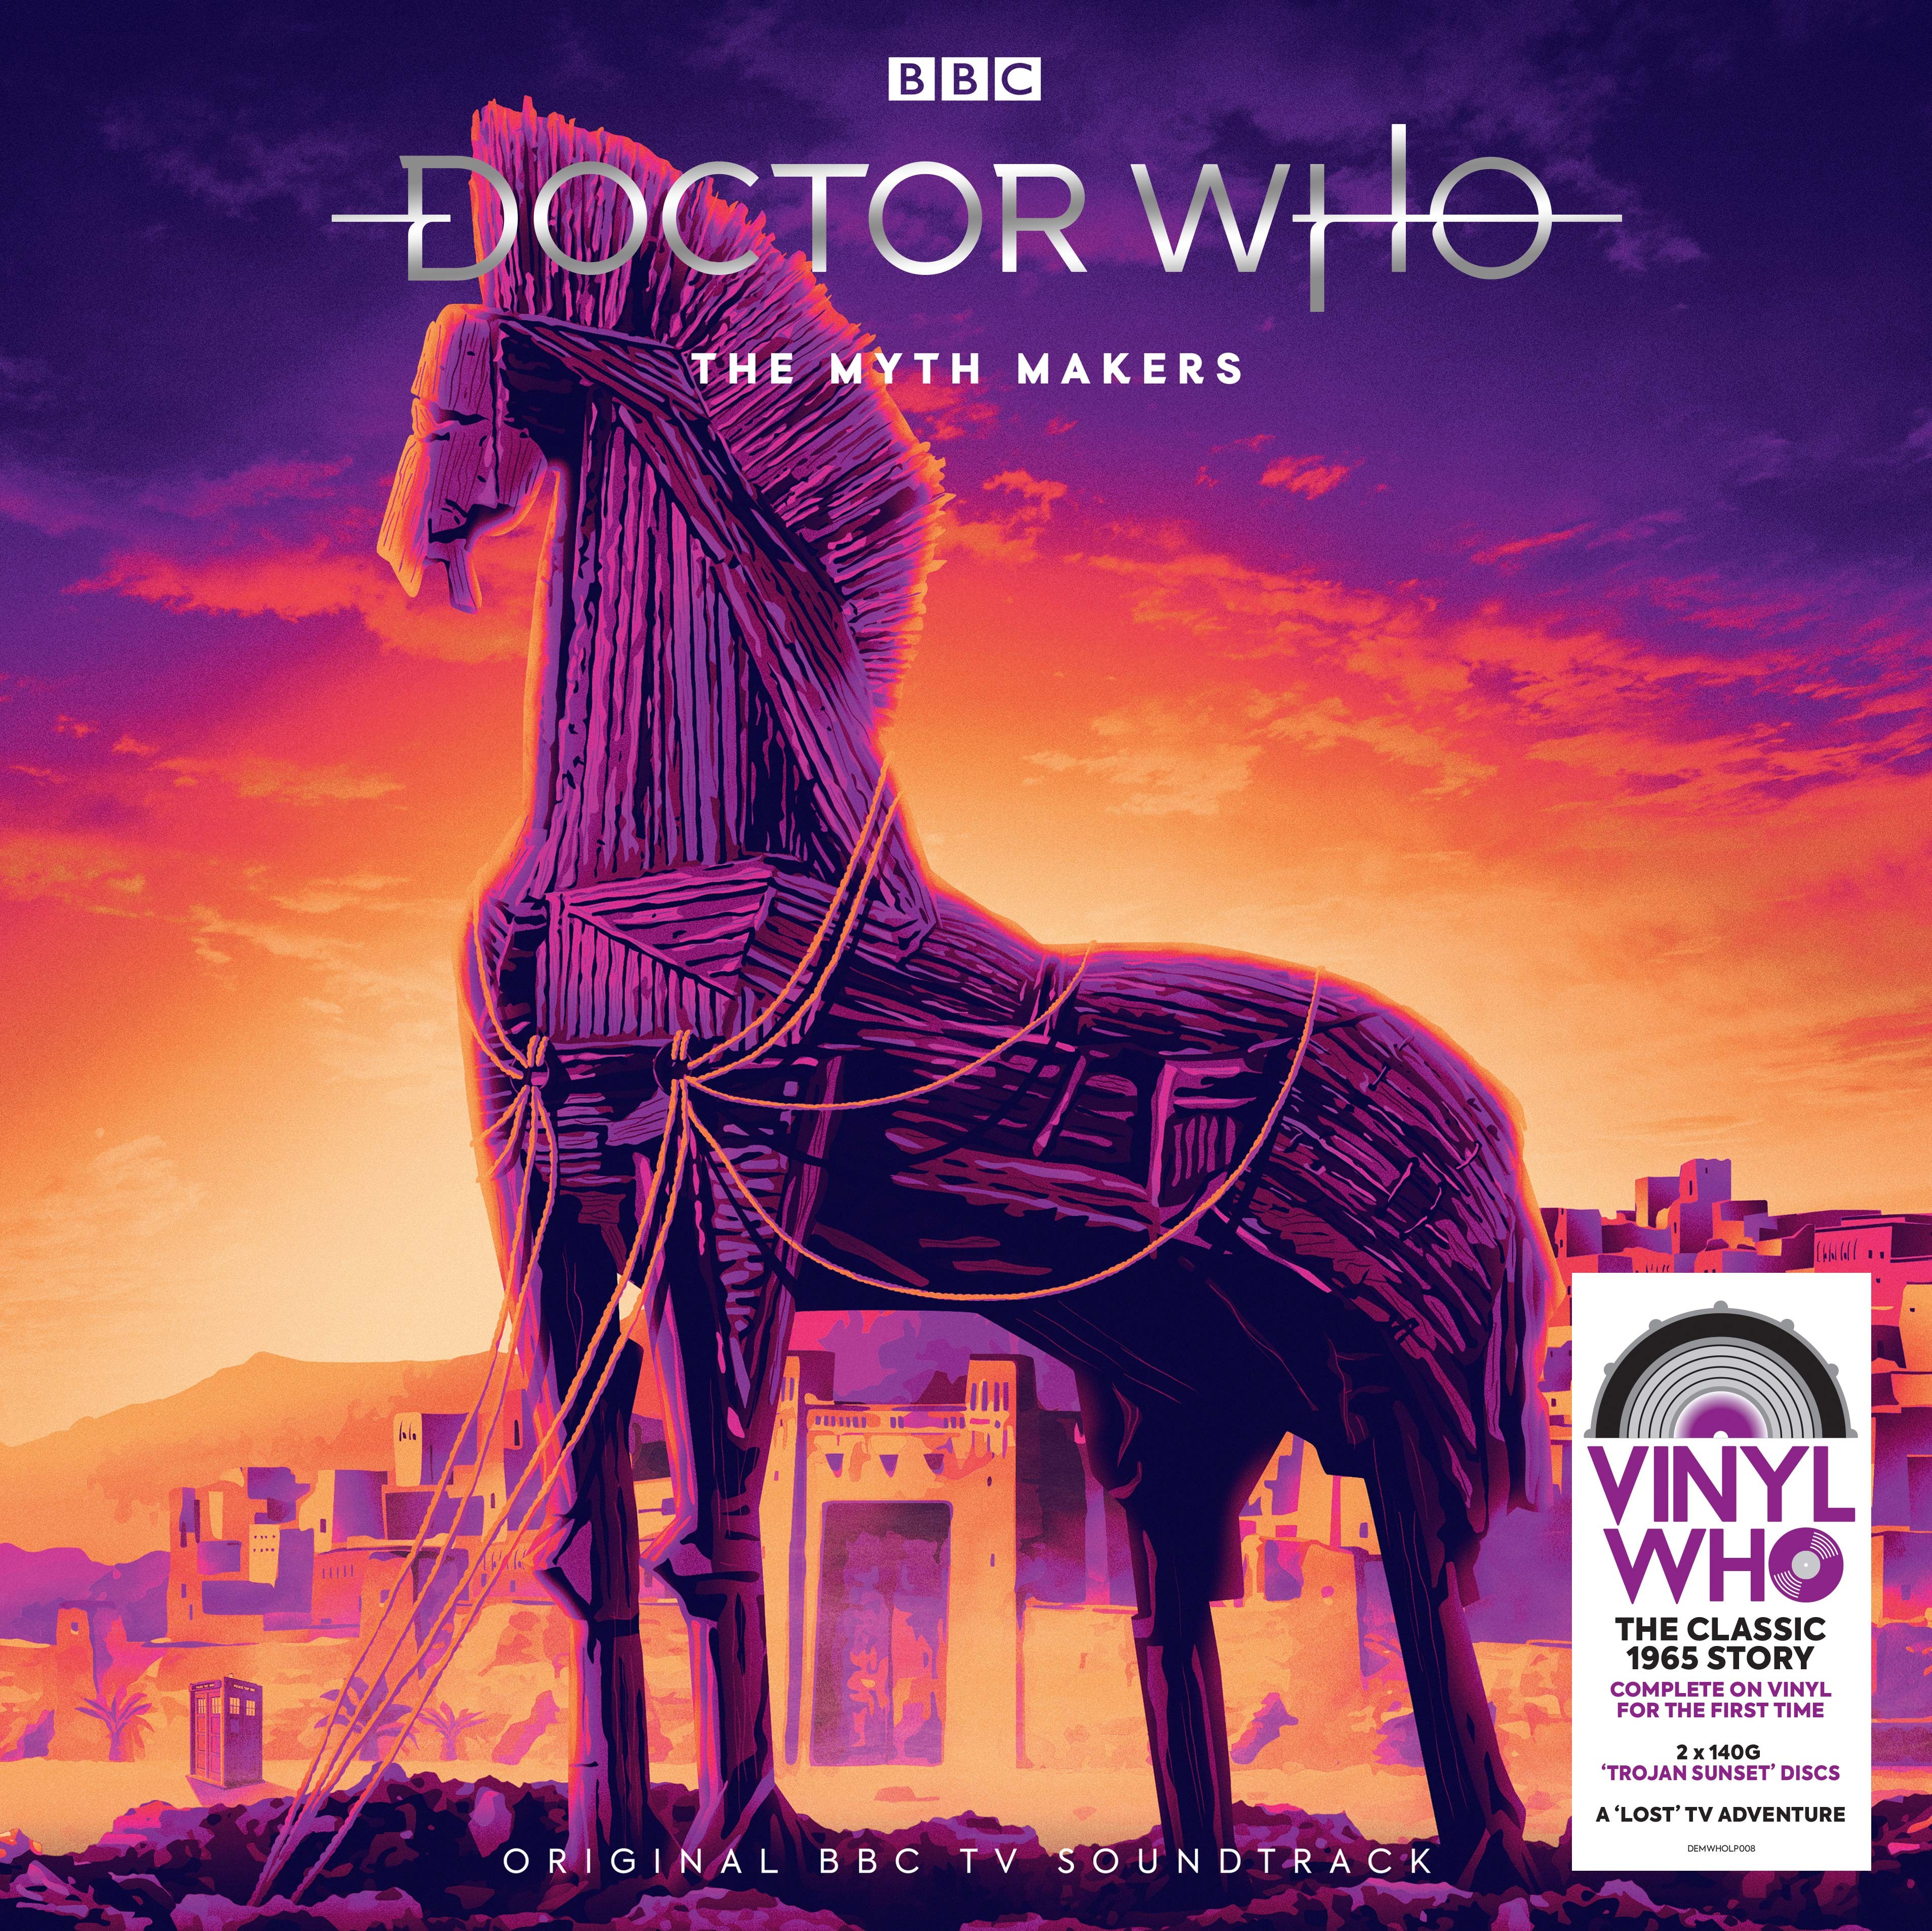 Doctor Who - The Myth Makers on vinyl